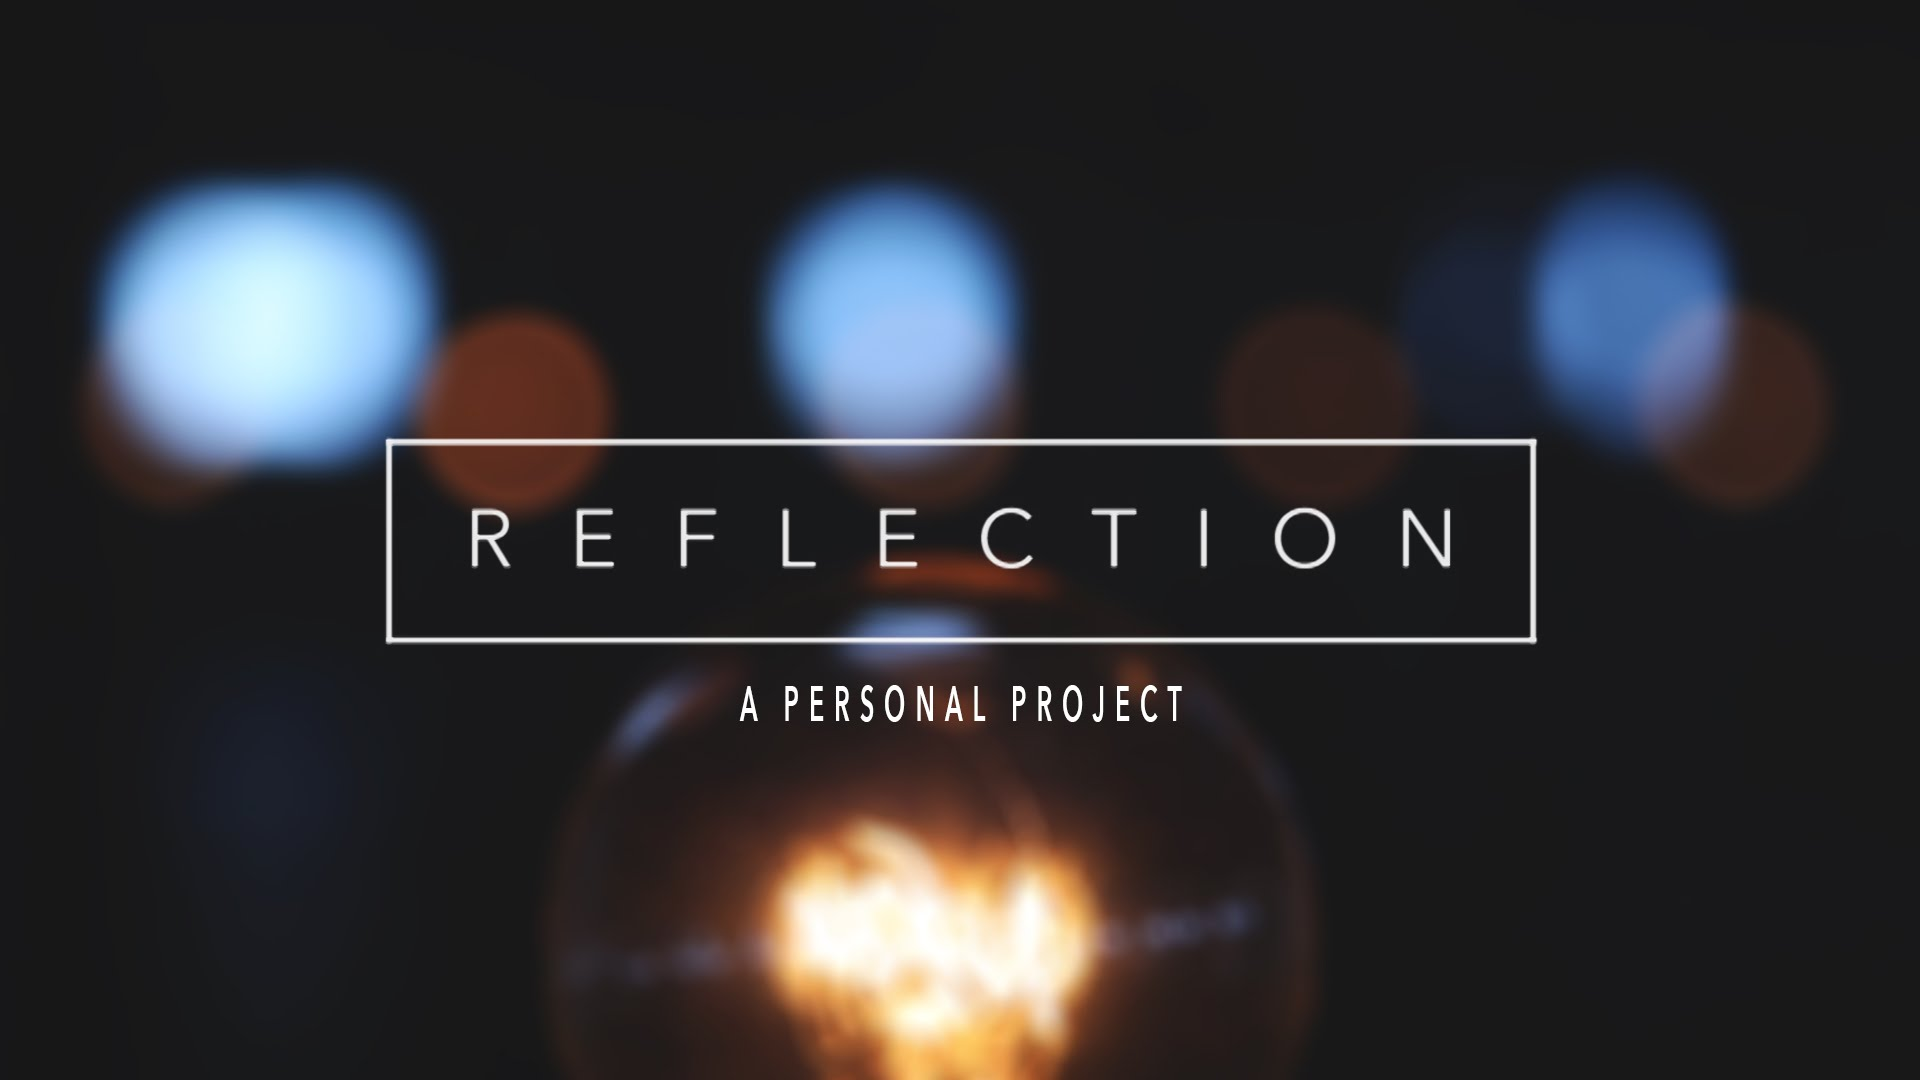 personal reflection produces a powerhouse of benefits life palette